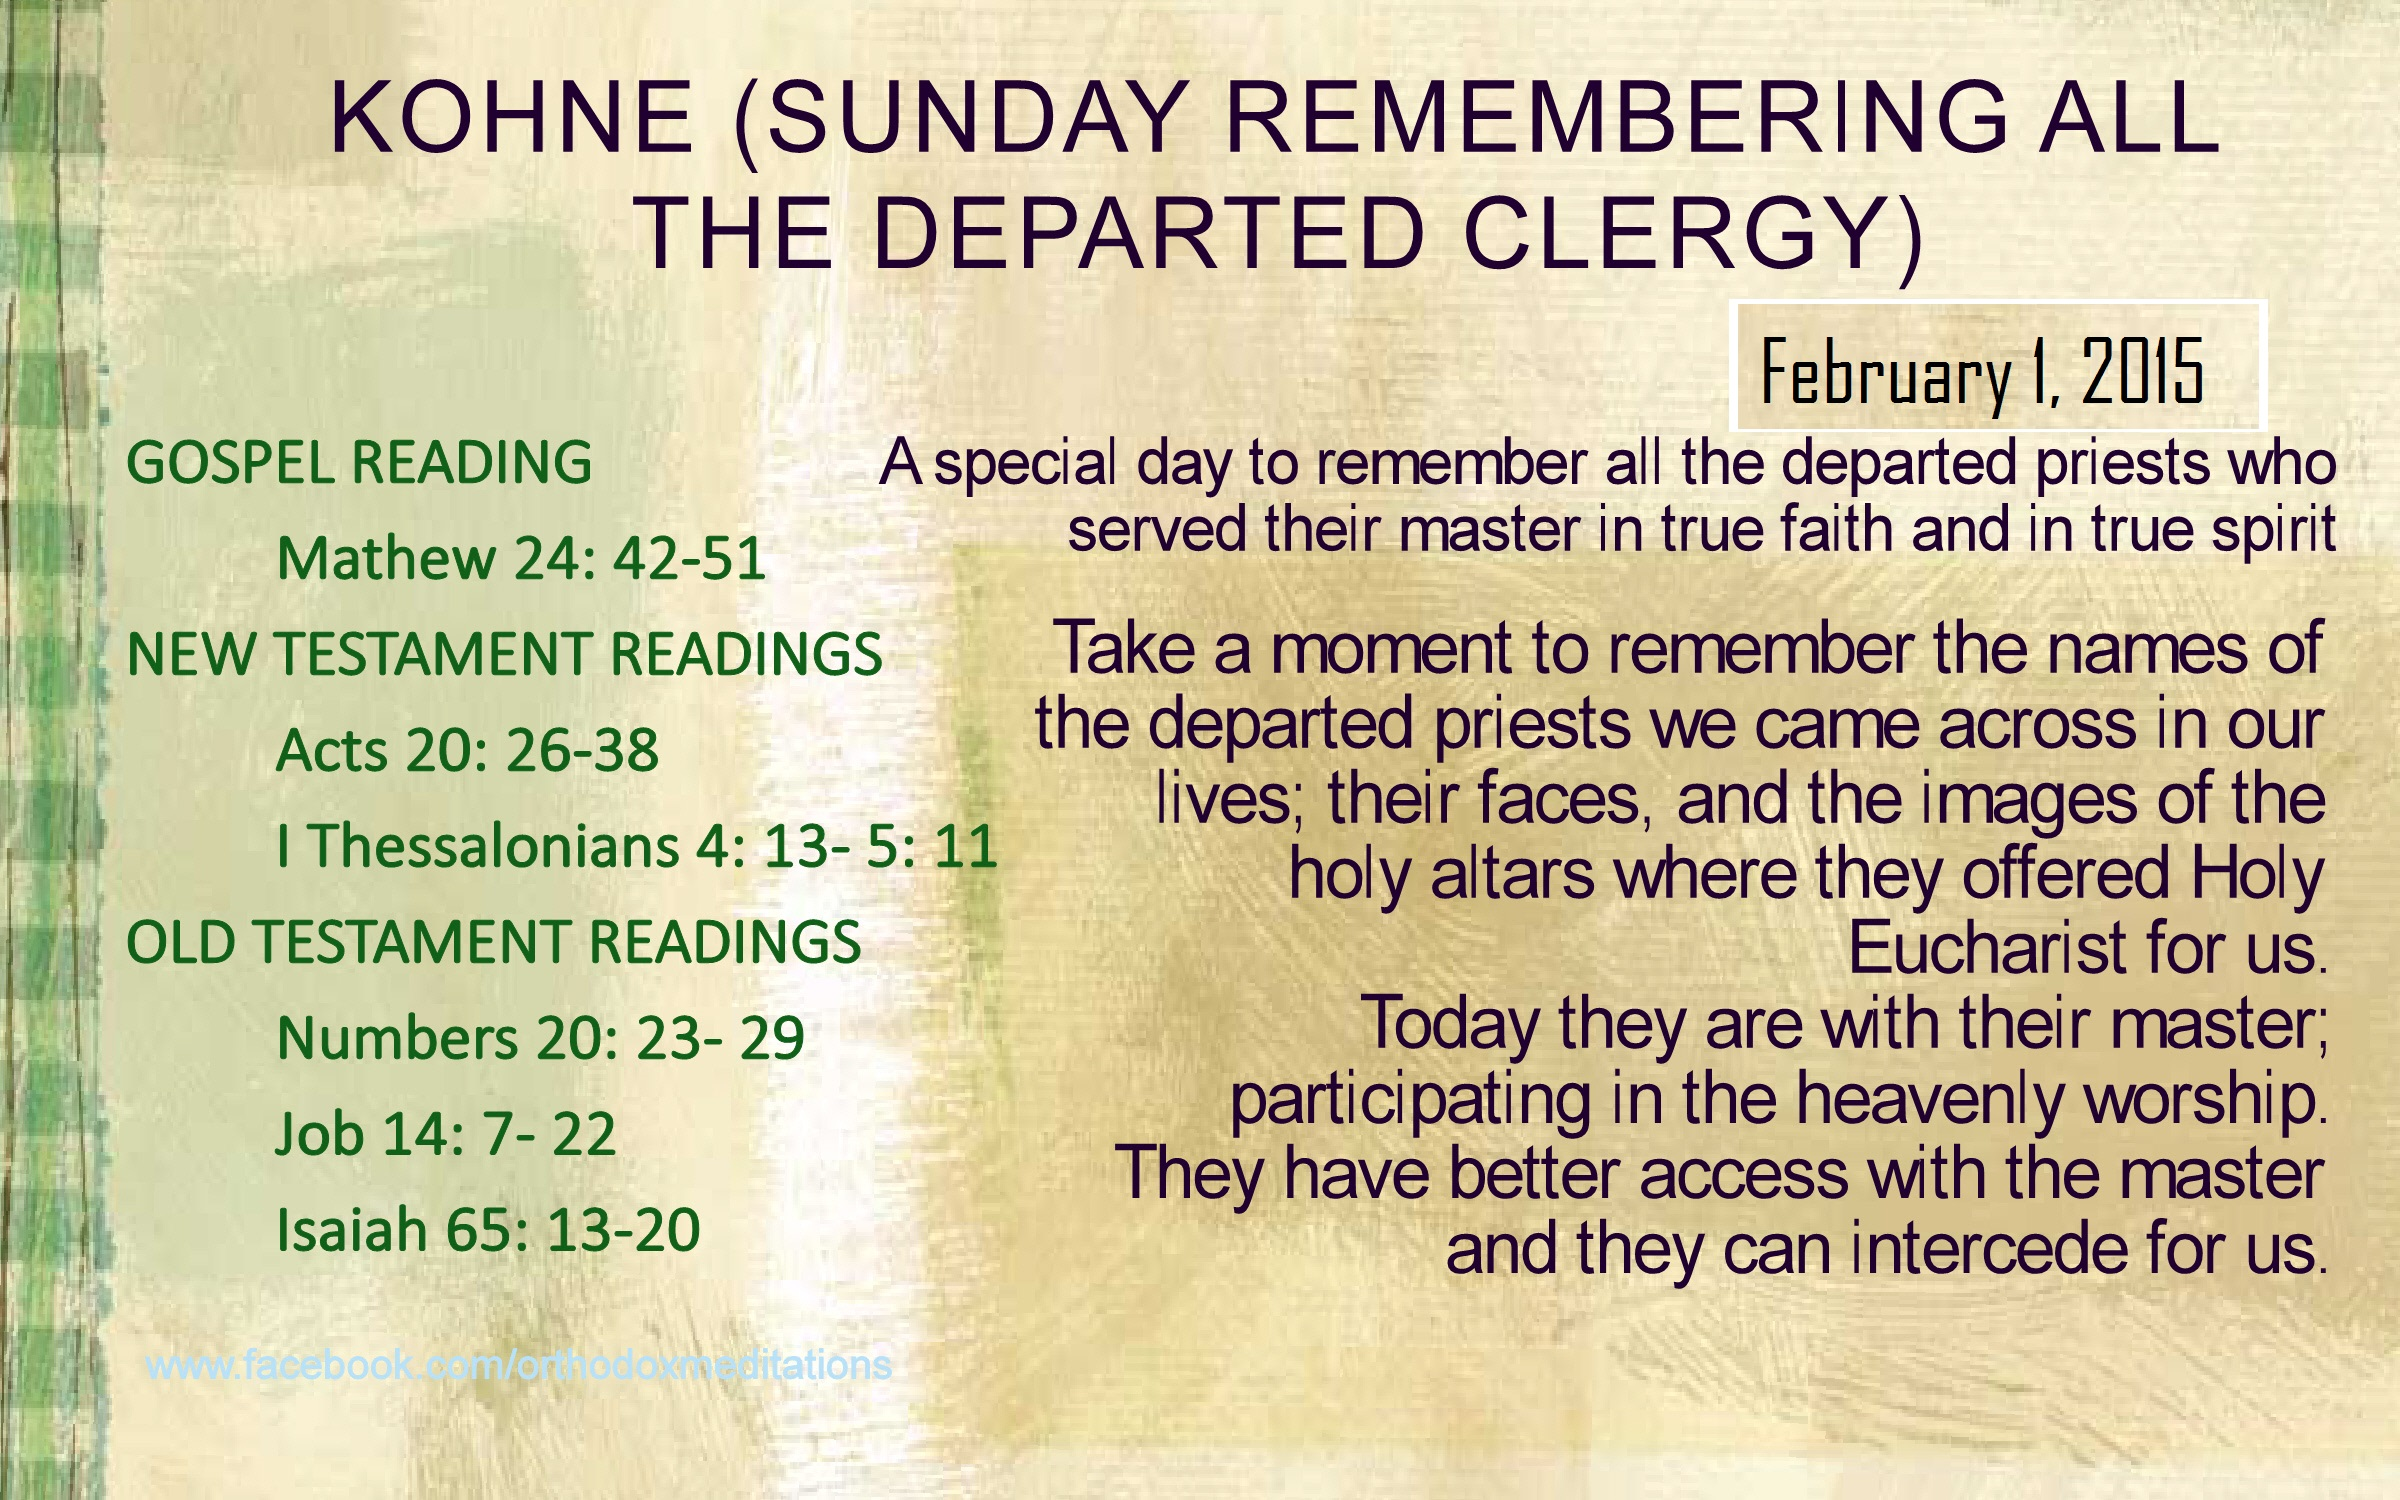 KOHNE-SUNDAY-REMEMBERING-ALL-THE-DEPARTED-CLERGY_001